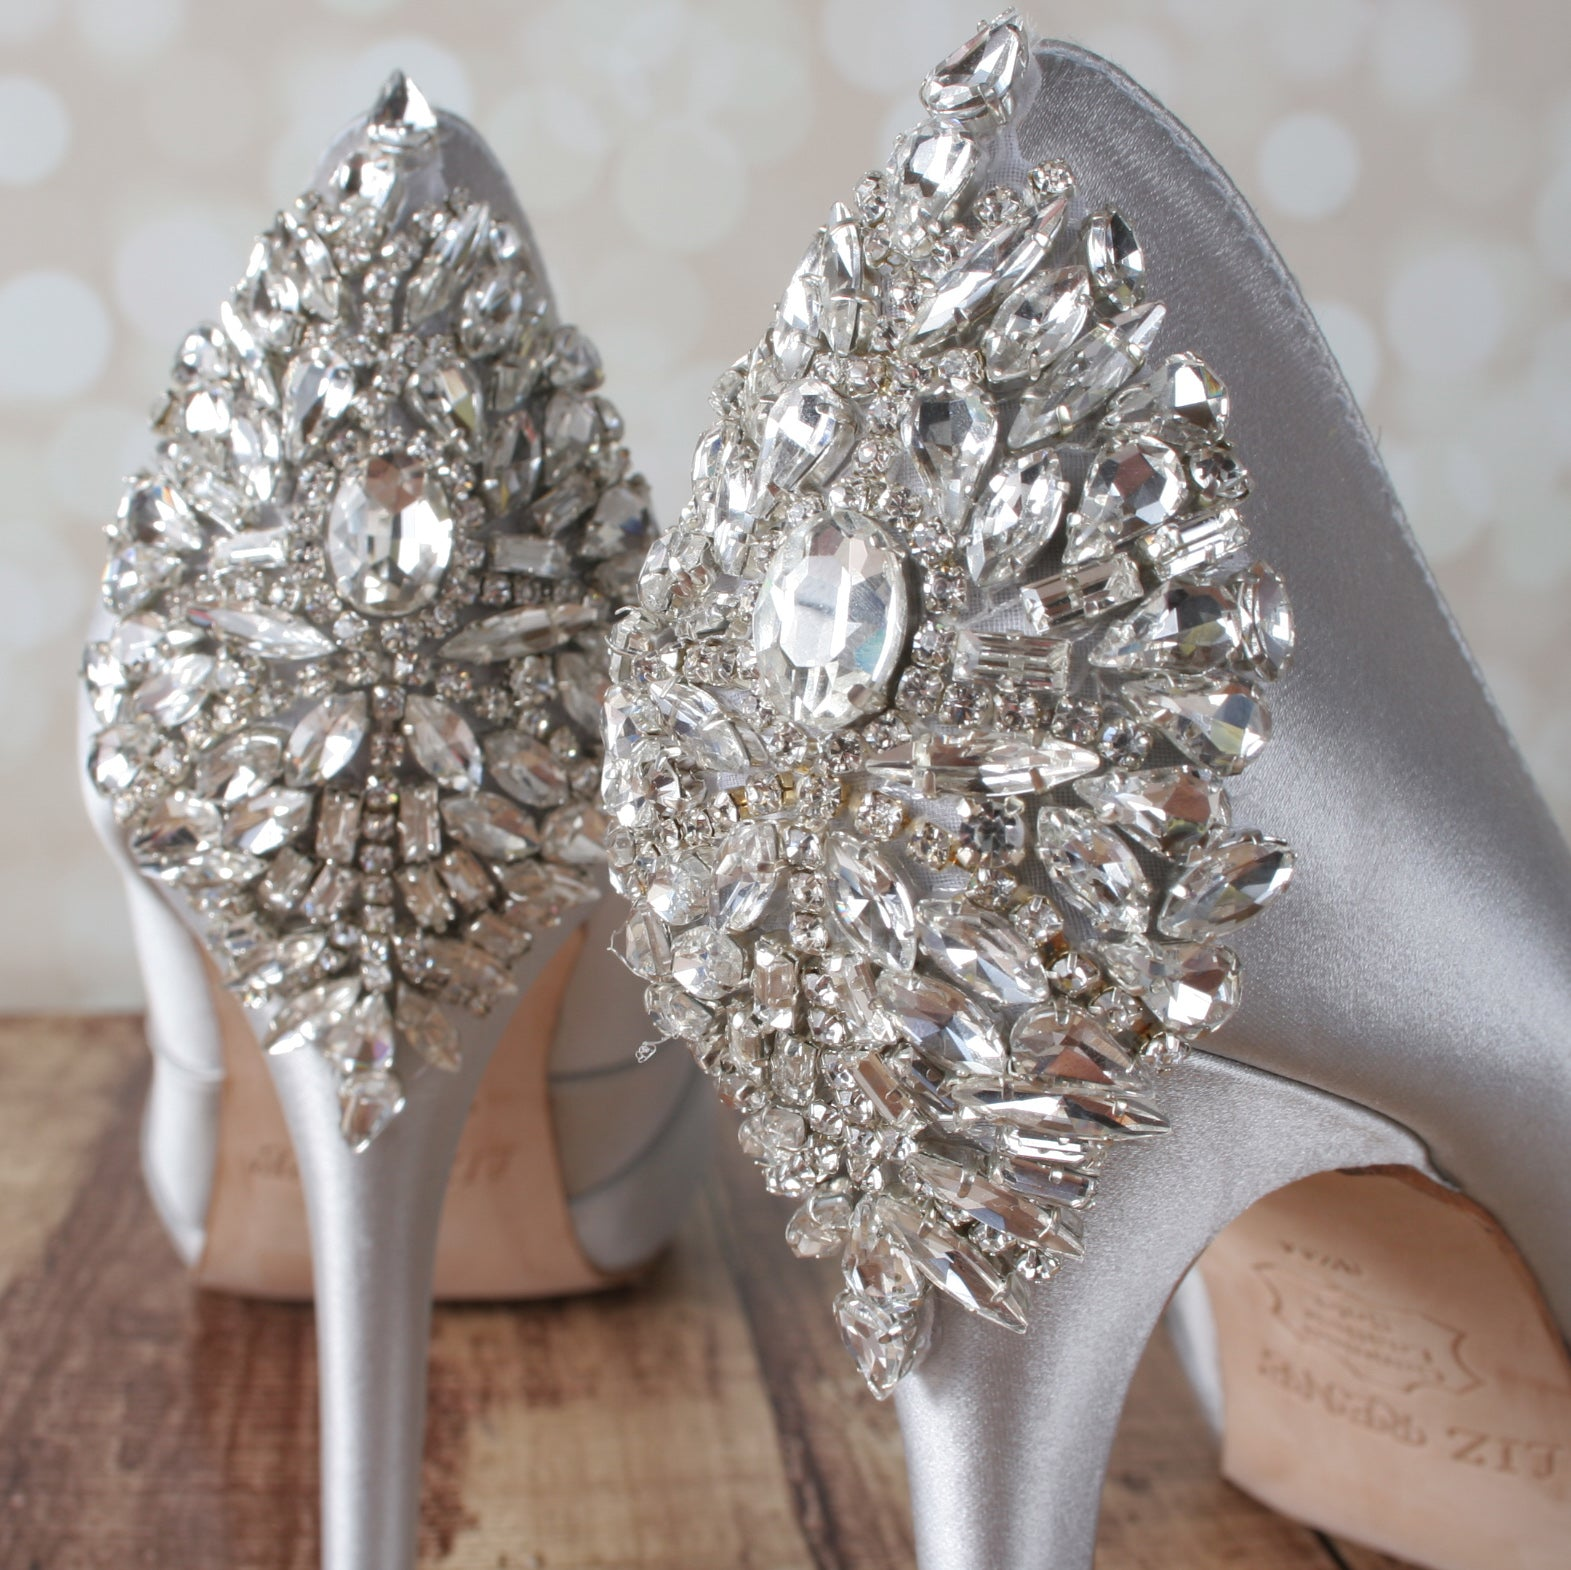 361b63a2e377 Silver Open Toe Platform Wedding Shoes with Sparkly Silver Crystal Heel -  Ellie Wren